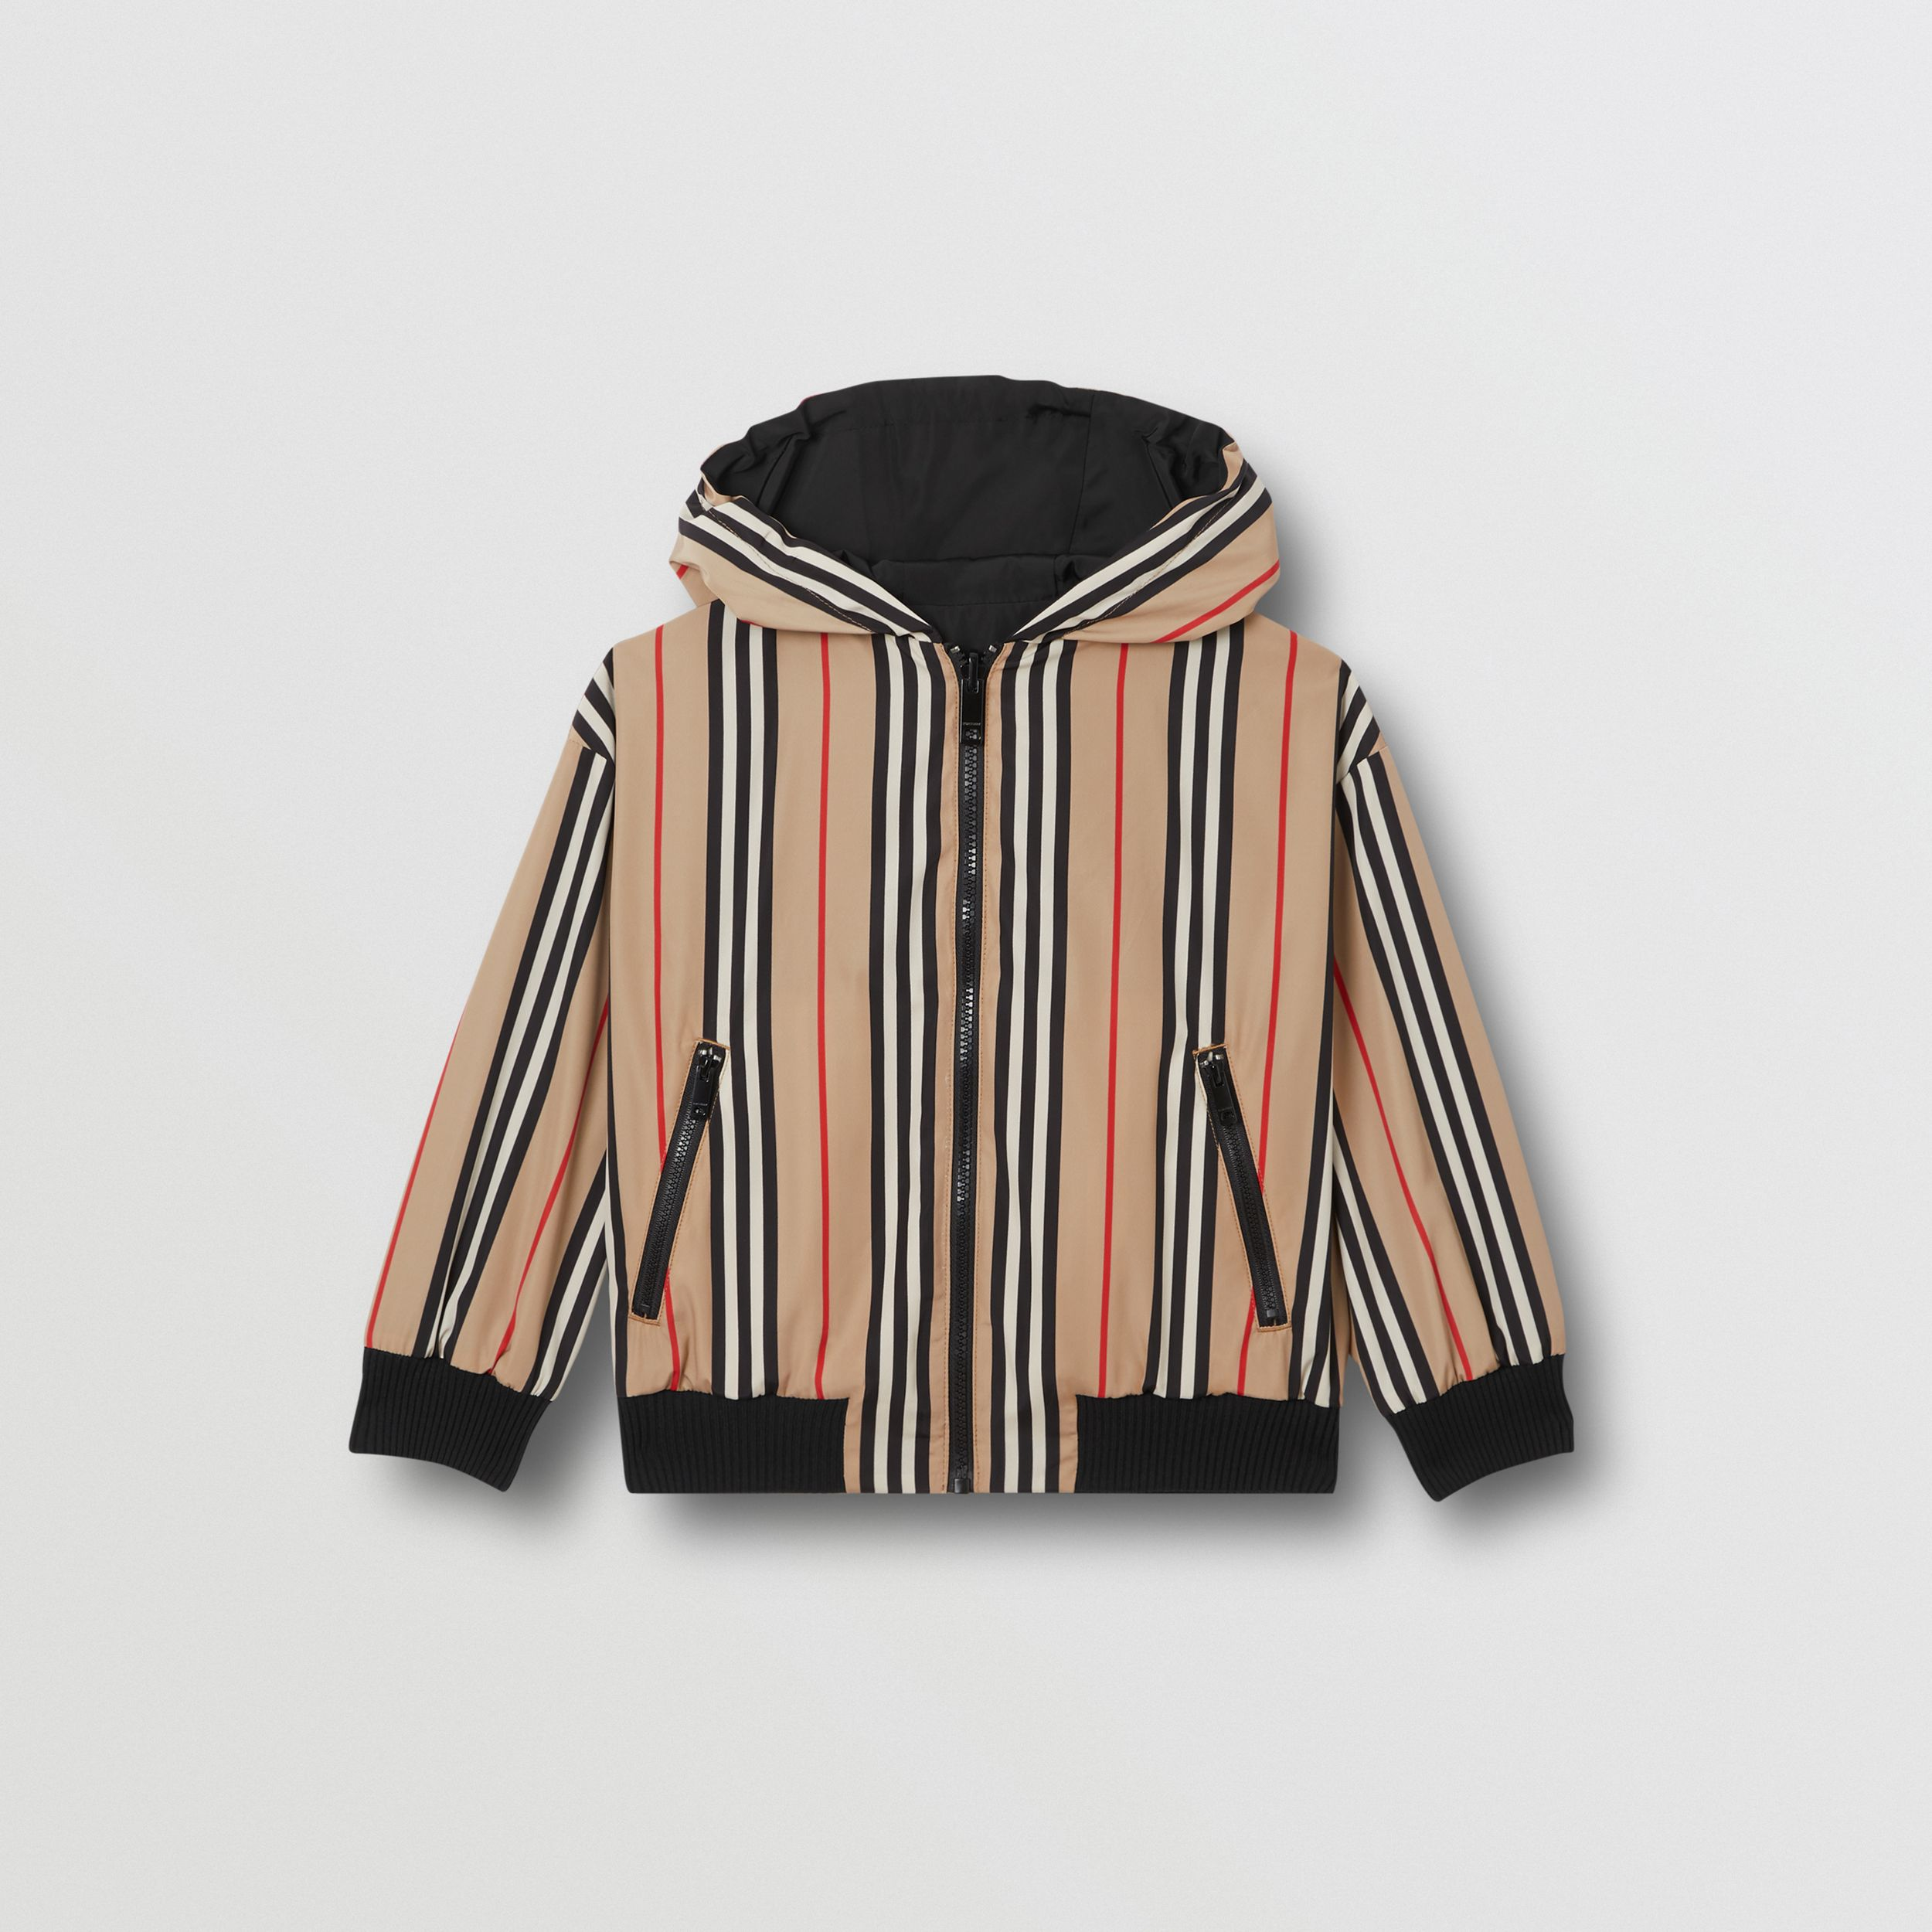 Reversible Icon Stripe Hooded Jacket in Black | Burberry - 1